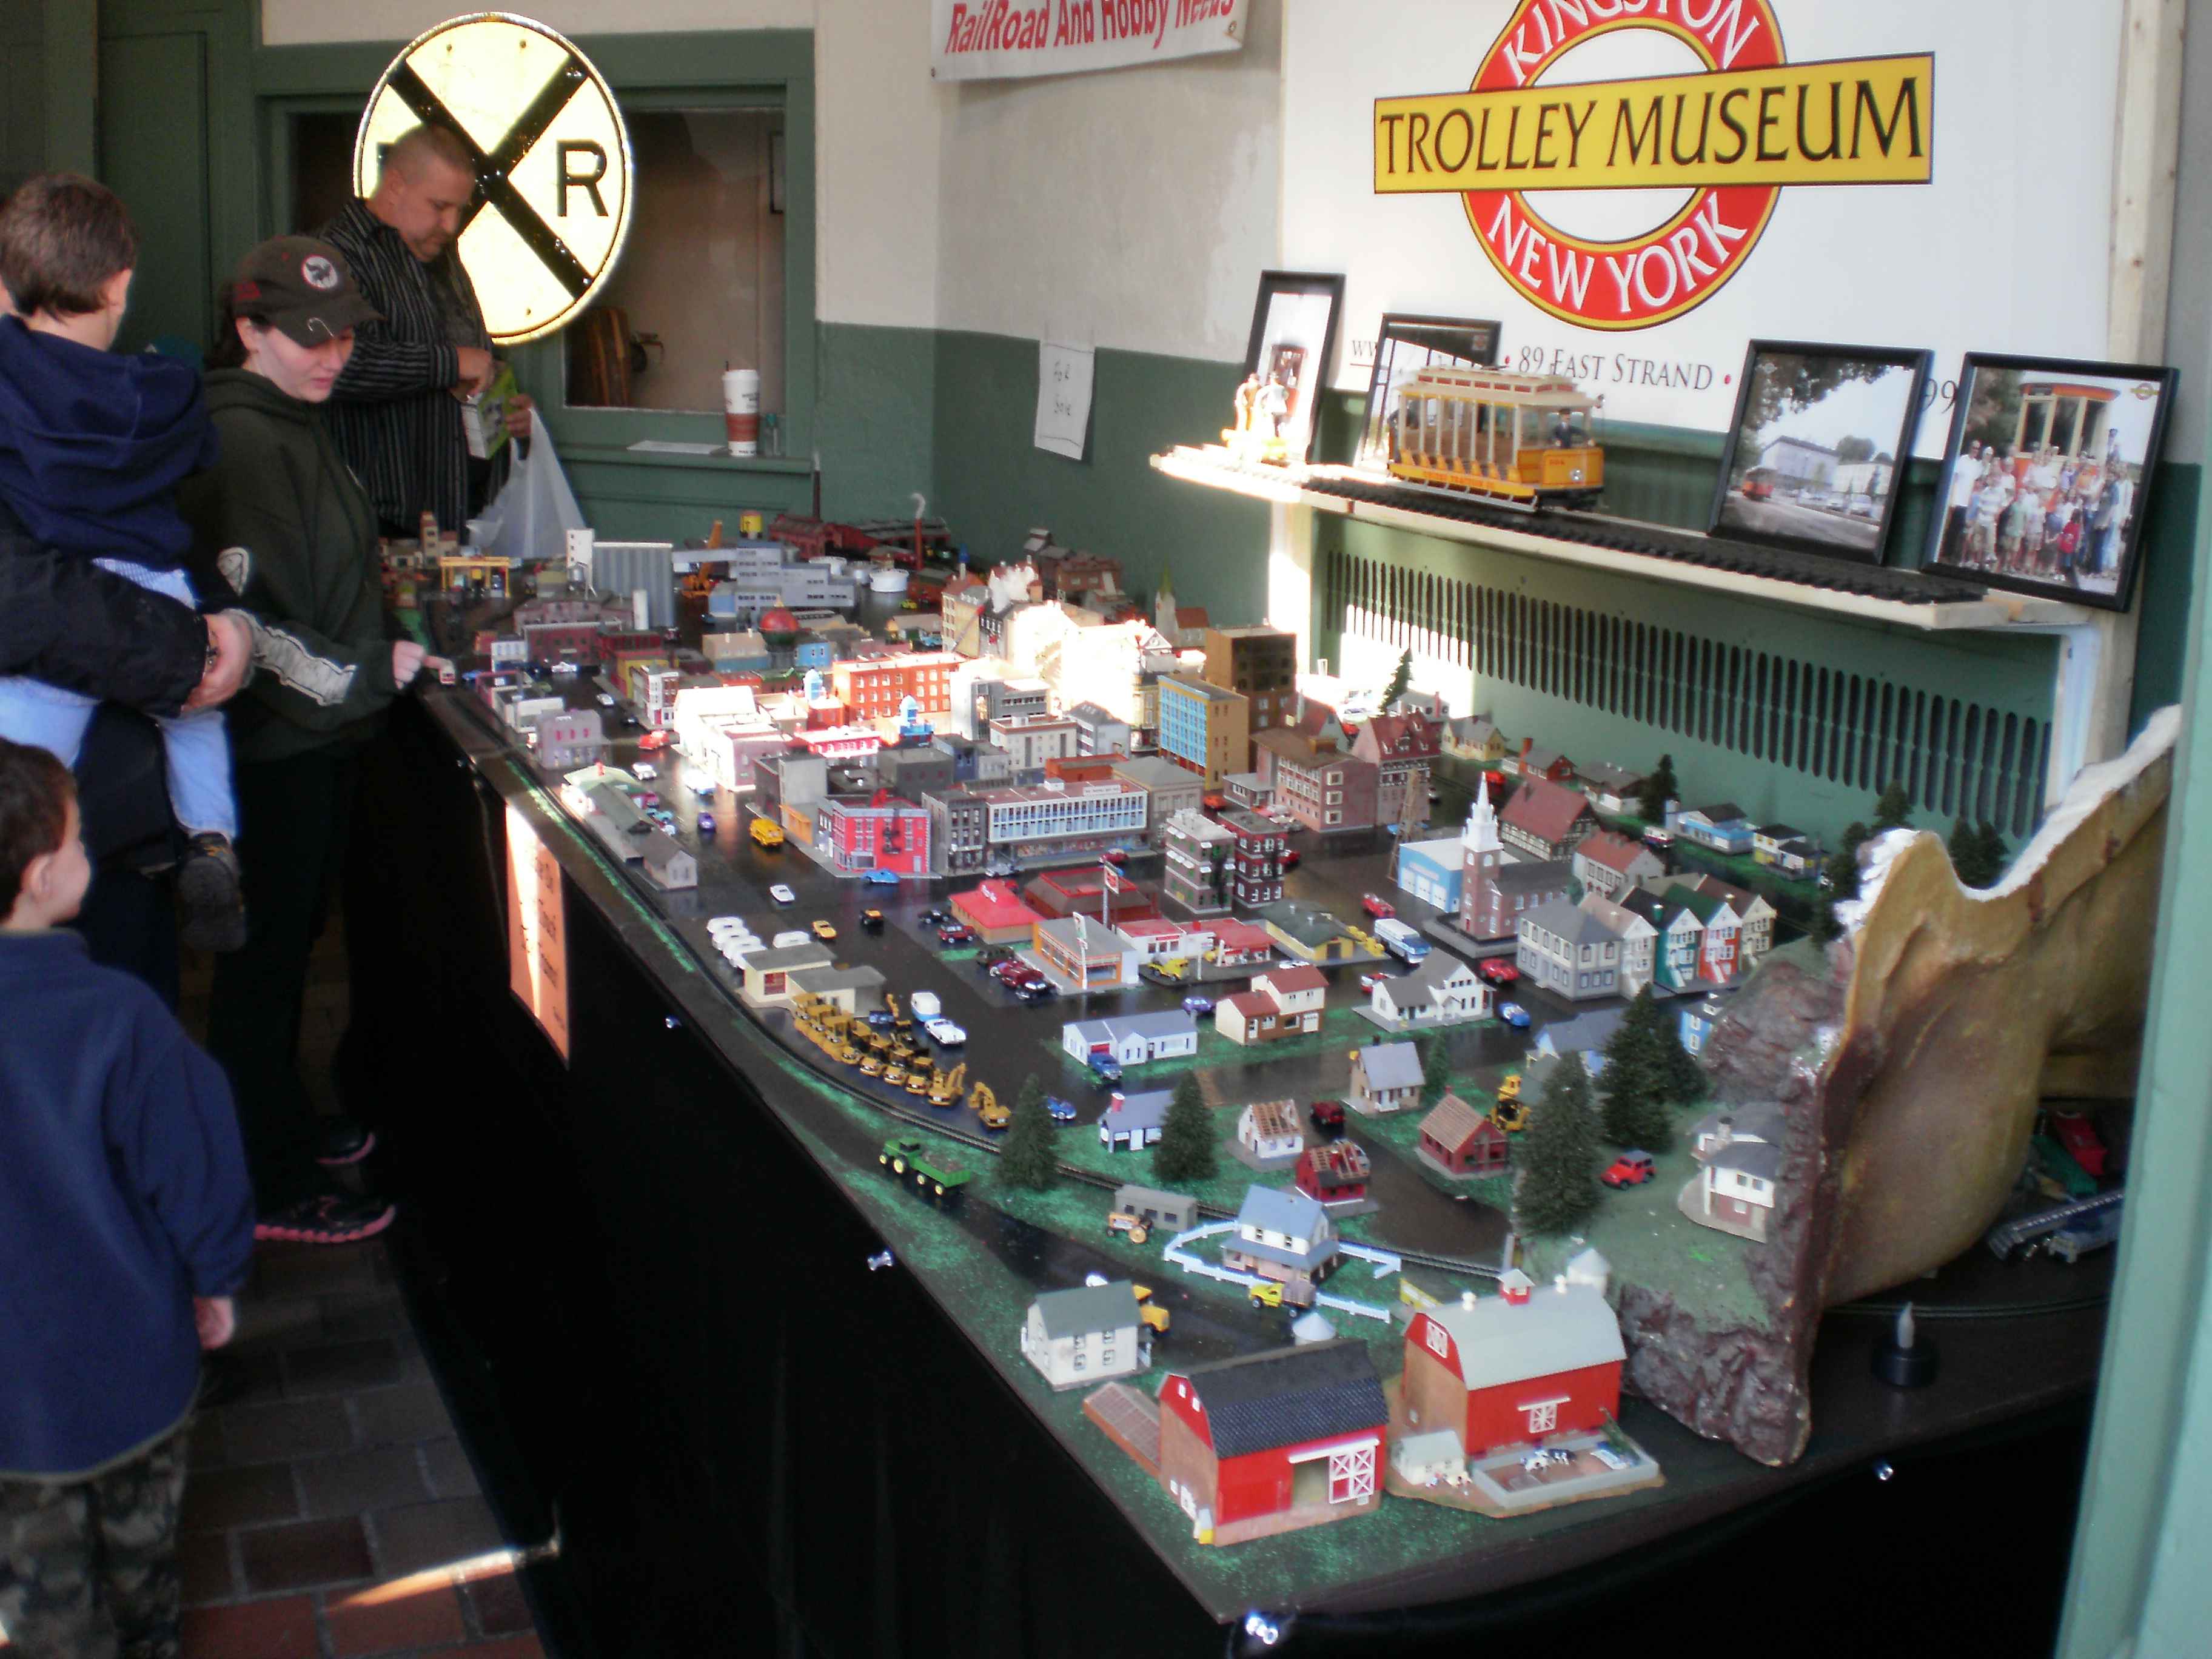 Kingston Ny Train Show One Of The Mid Hudson Valley S